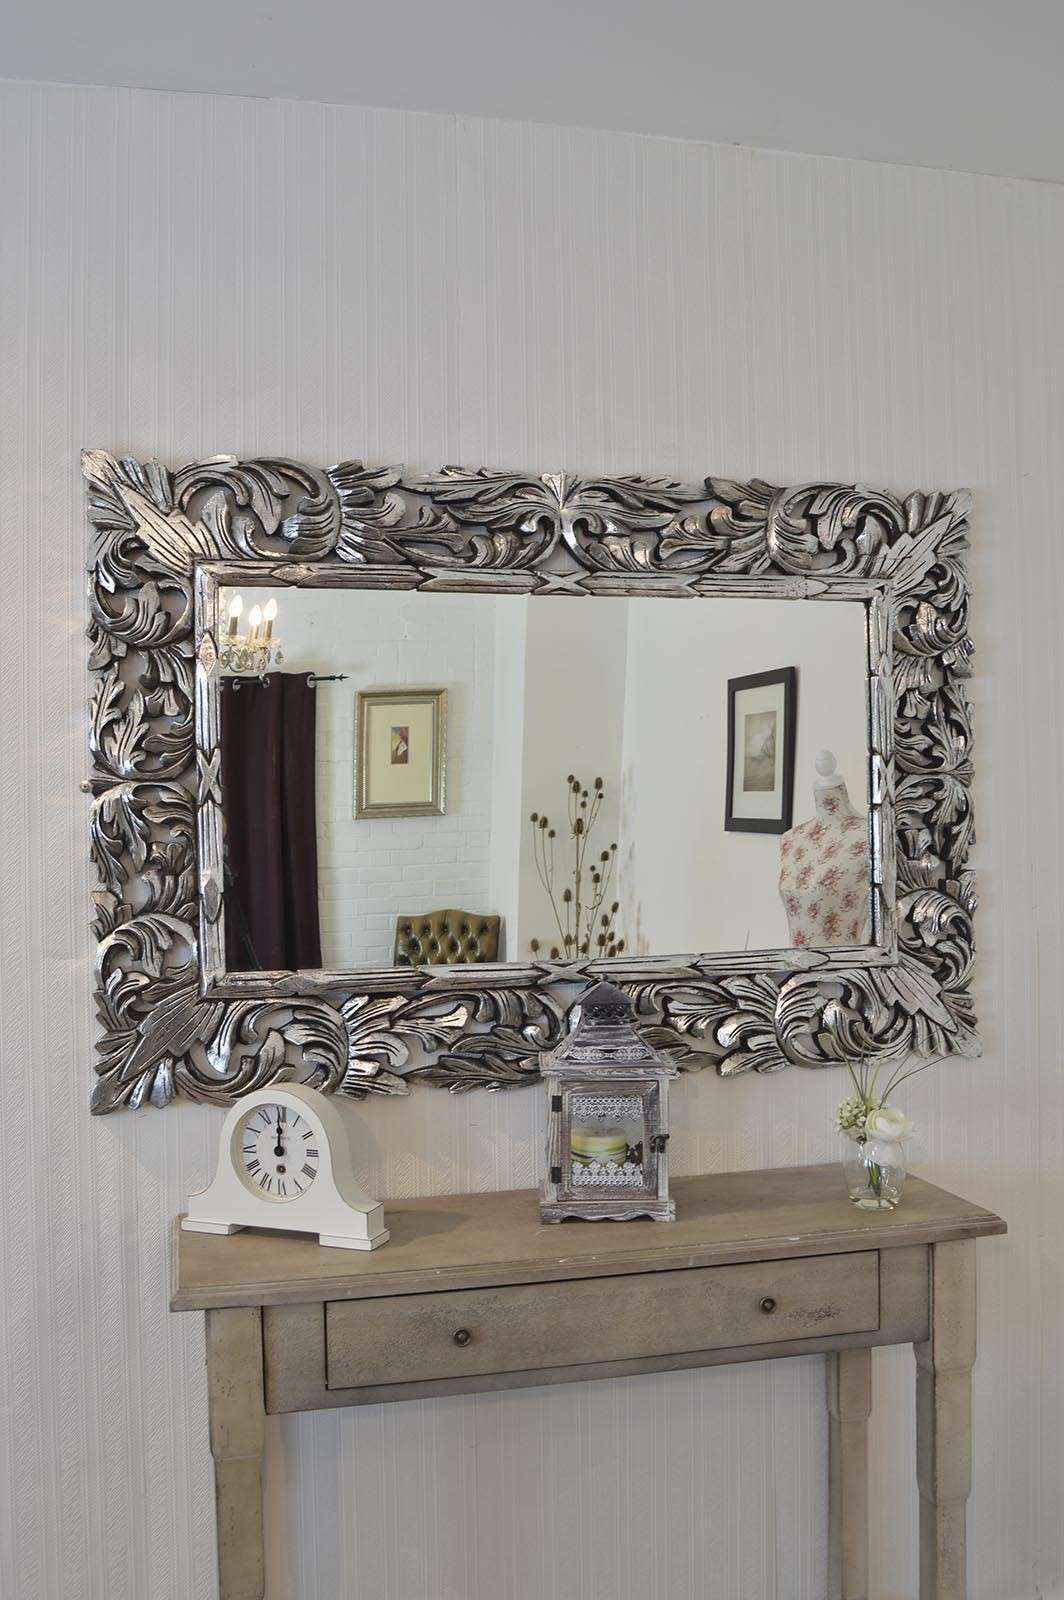 4ft11 X 3ft4 Large Silver Carved Ornate Wall Mounted Mirror Wood Intended For Silver Ornate Mirror (Image 2 of 15)